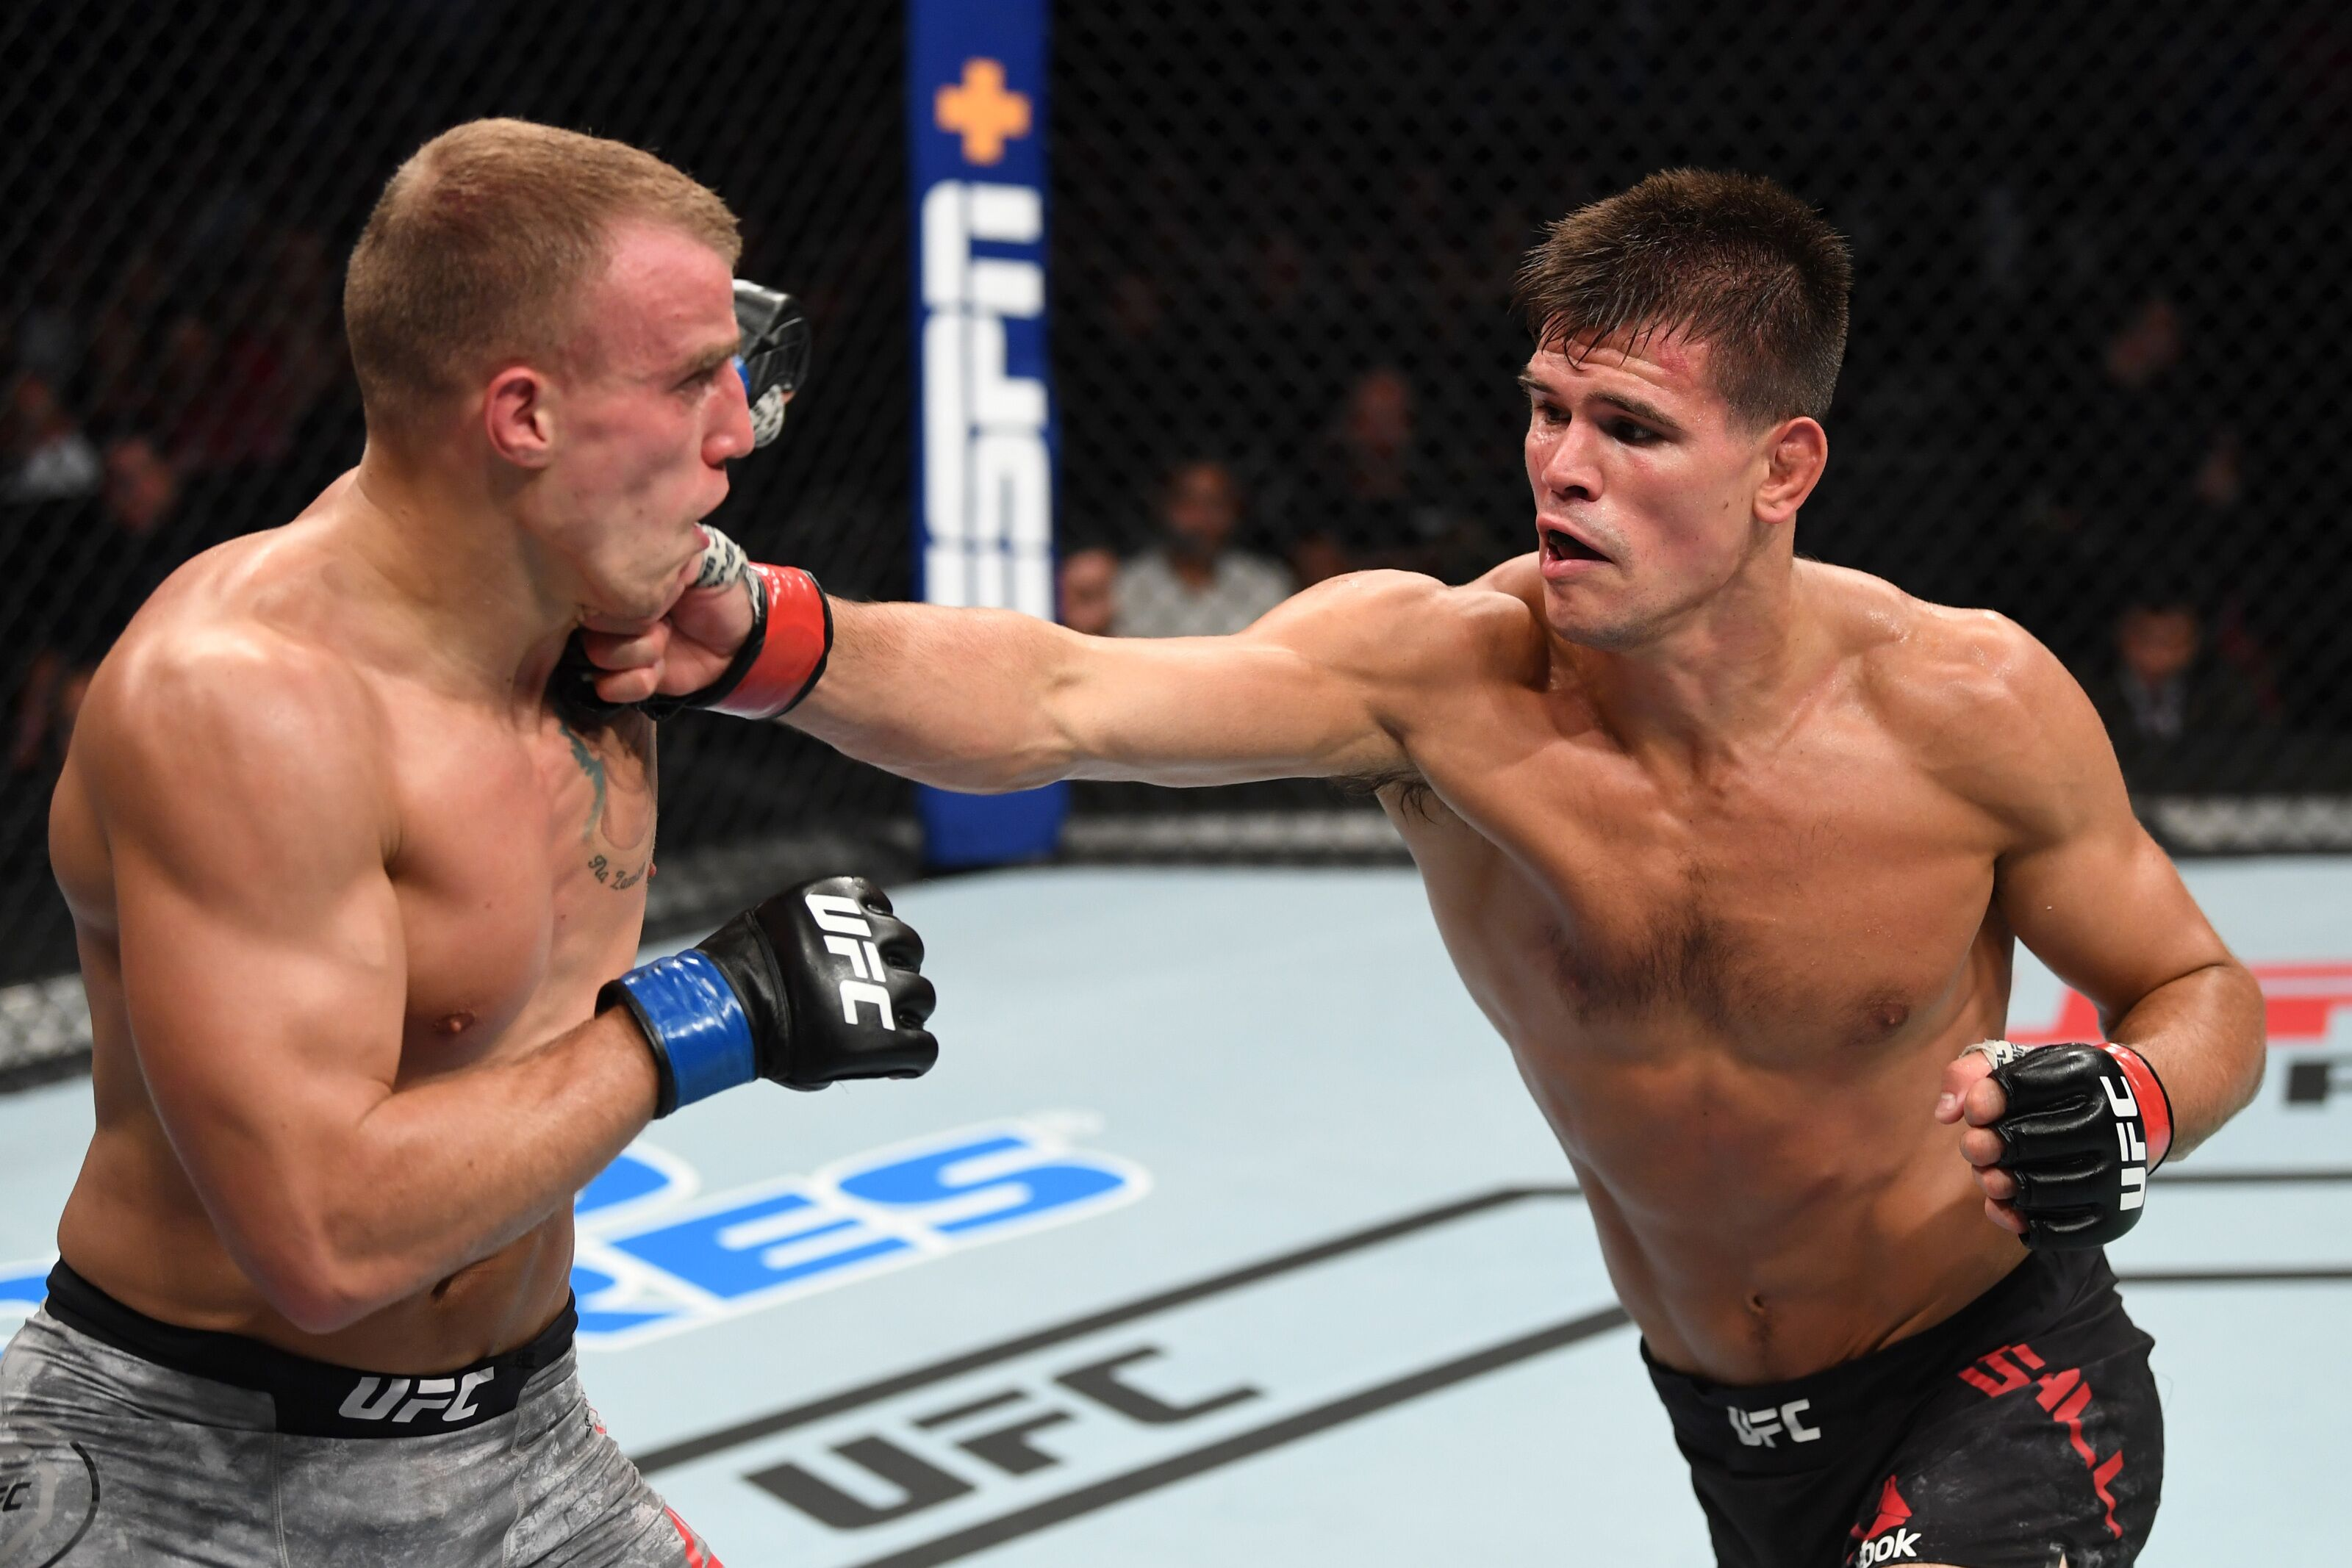 UFC Newark: NJ native Mickey Gall gets decision over Salim Touahri at home